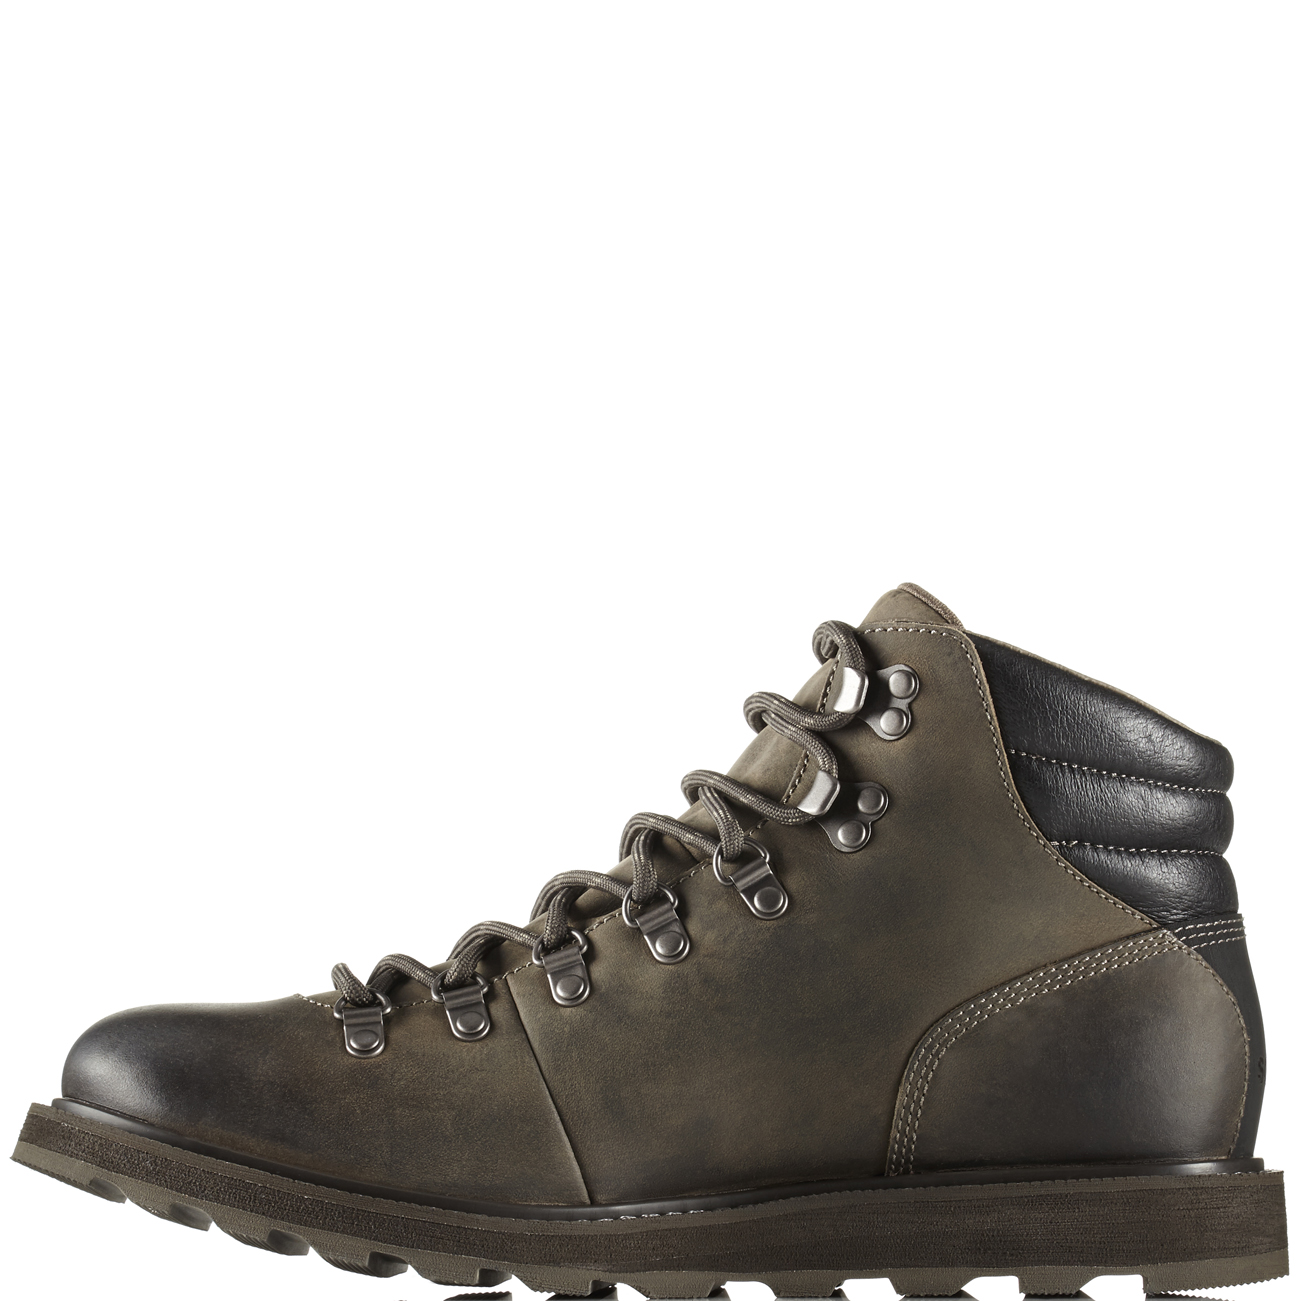 76a1c5cacd5 Details about Mens Sorel Madson Hiker Waterproof Hiking Walking Leather  Ankle Boots UK 7-13